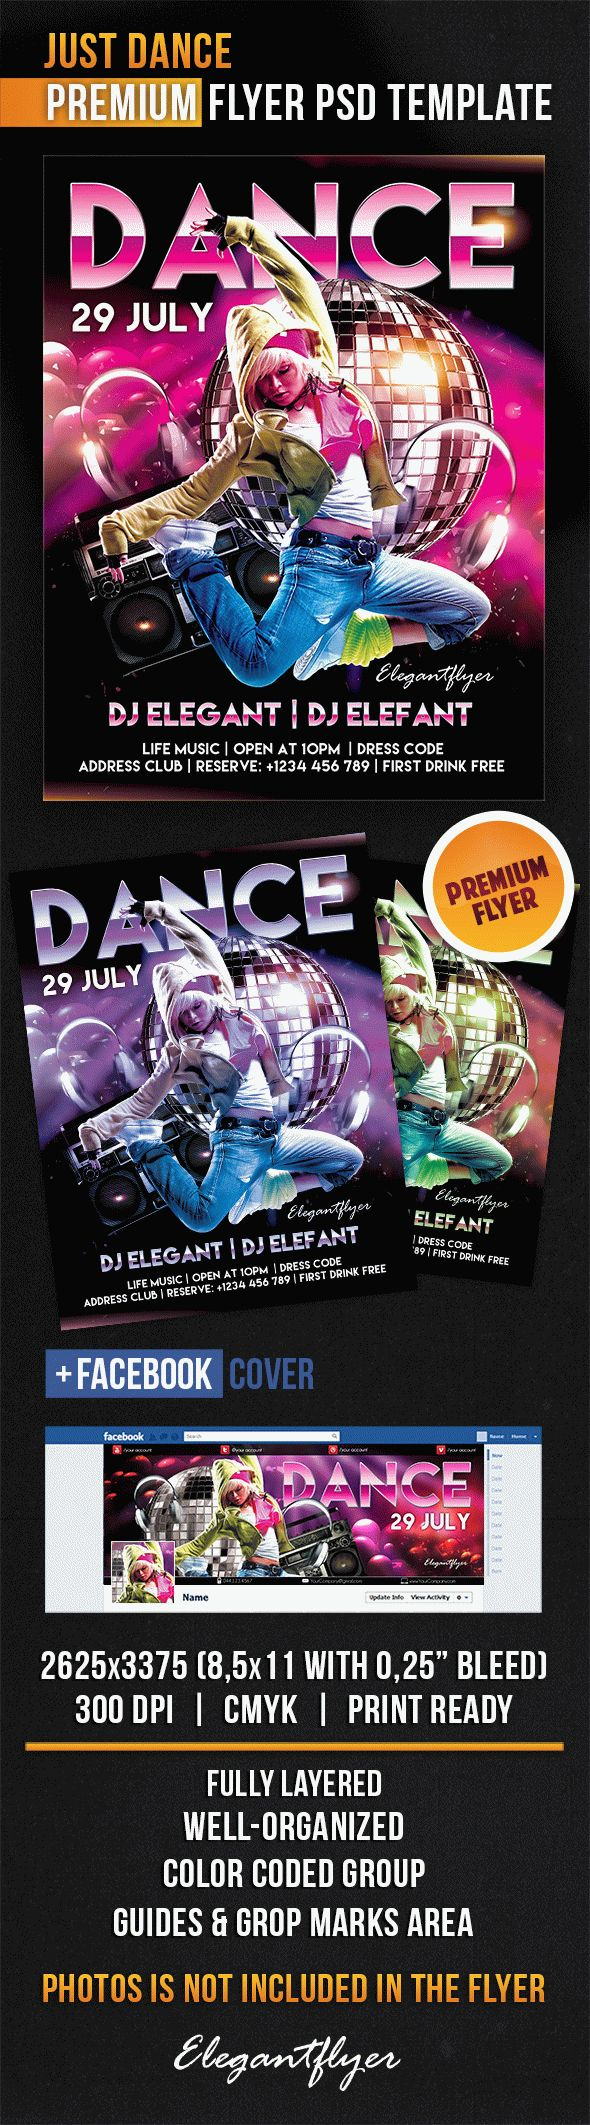 Just Dance – Flyer PSD Template